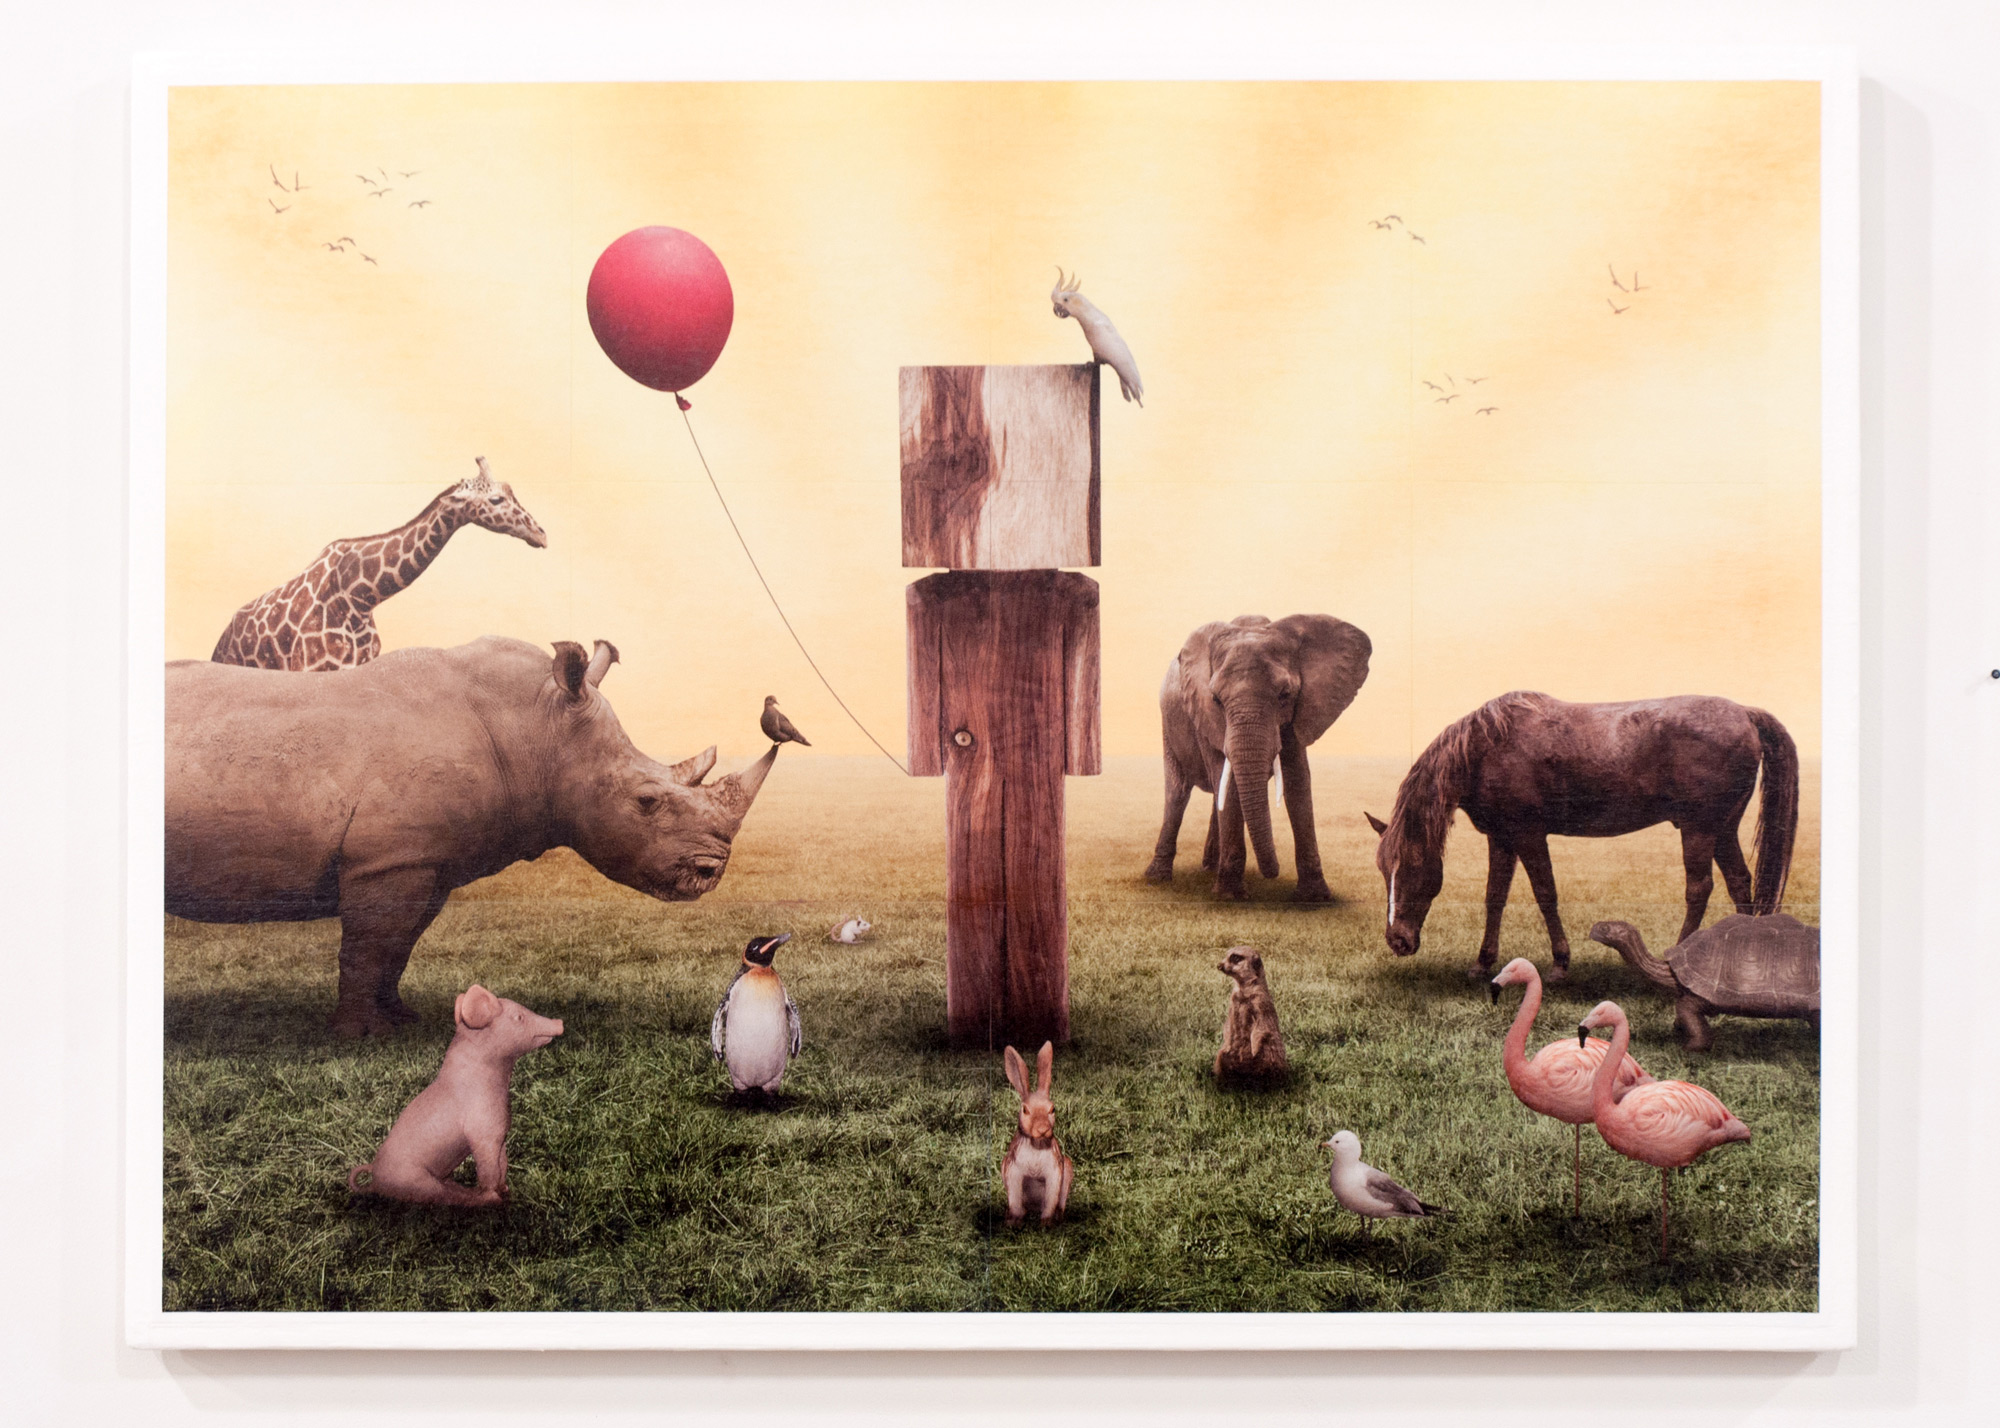 Menagerie (collab. BLOCKHEAD) gridded photograph on panel with gel medium 37 x 49 inches GNO 210G